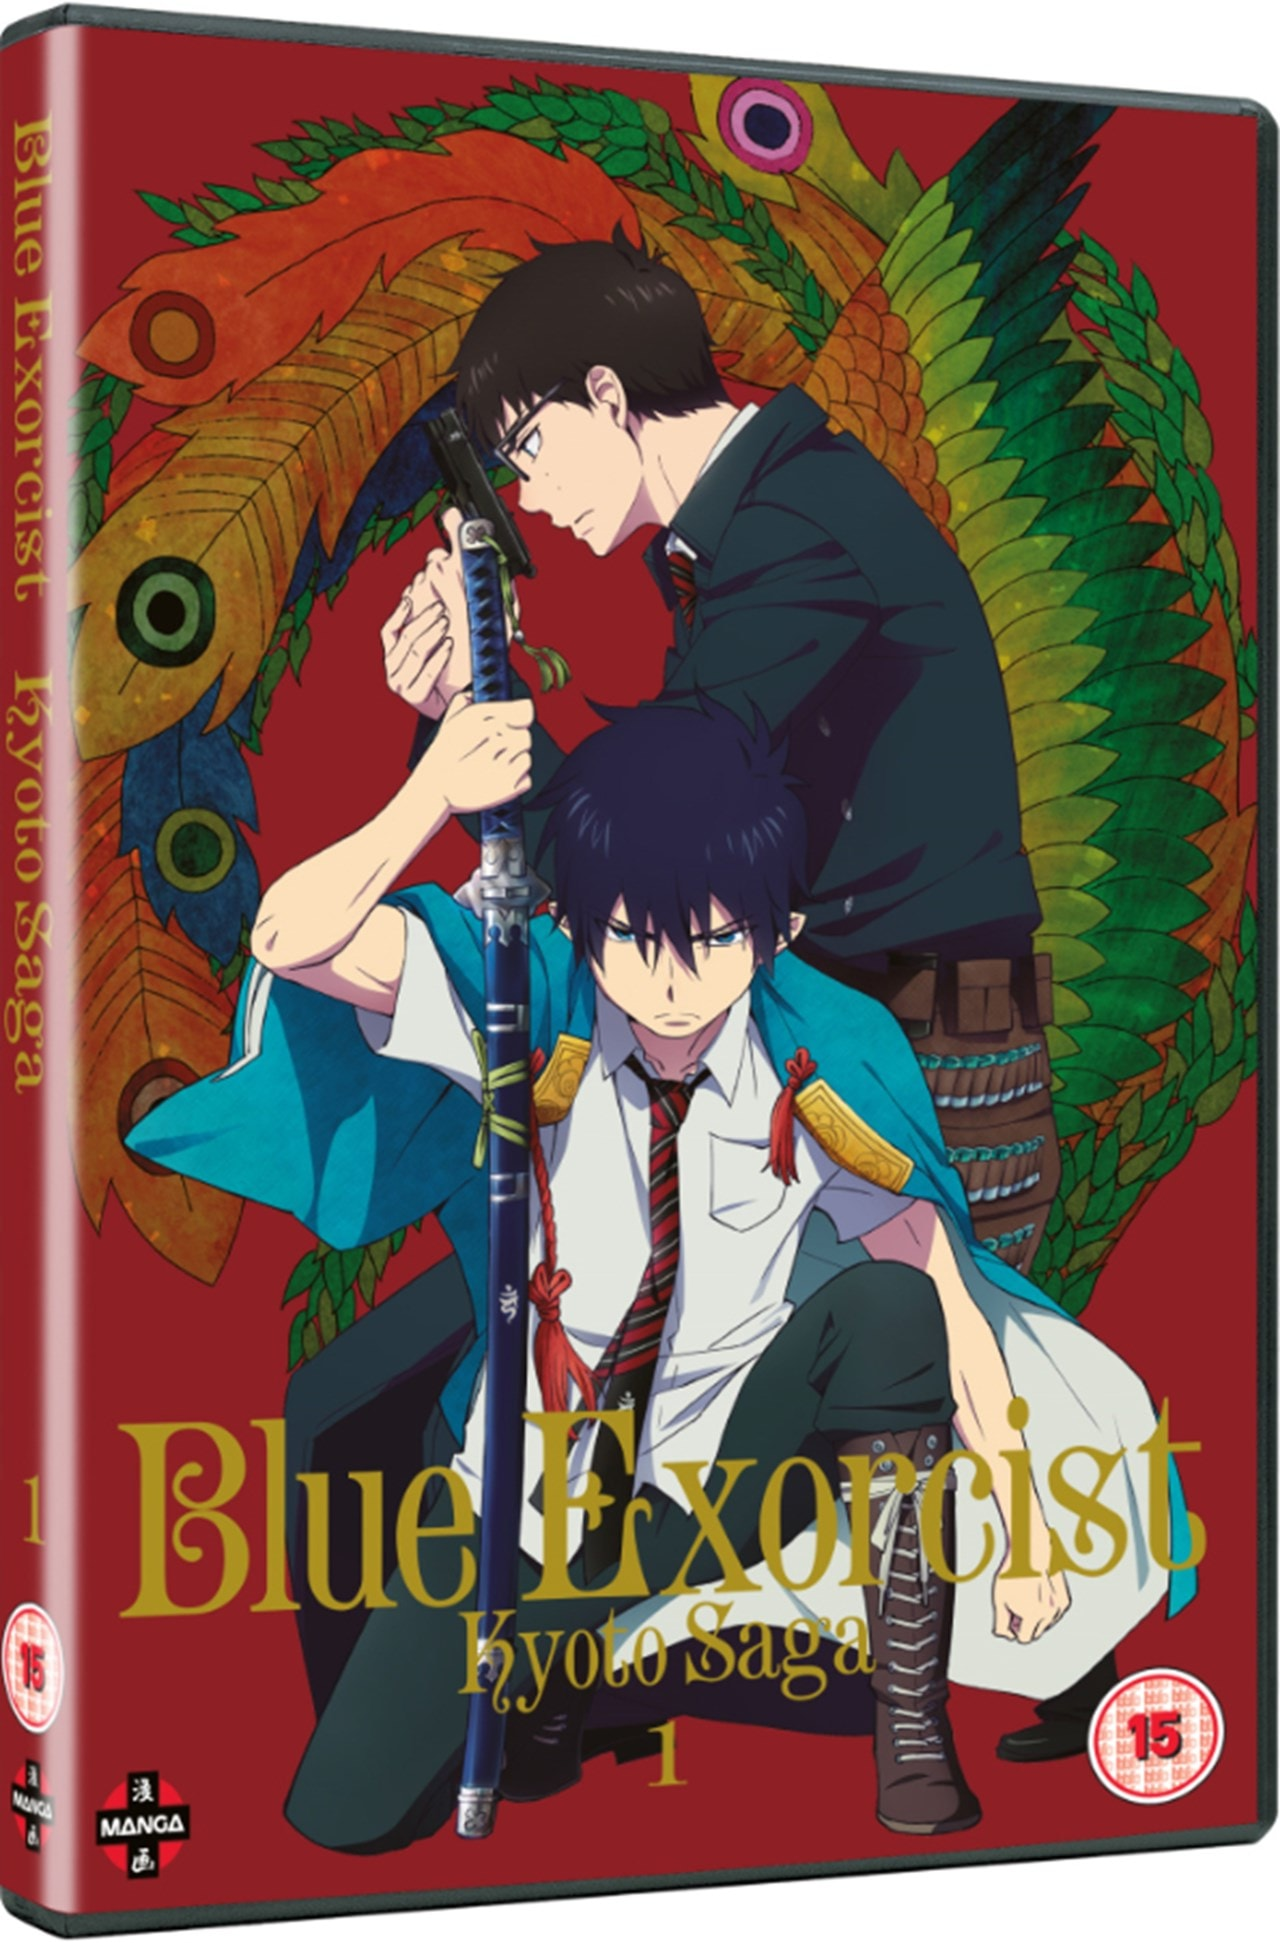 Blue Exorcist: Season 2 - Kyoto Saga Volume 1 - 2